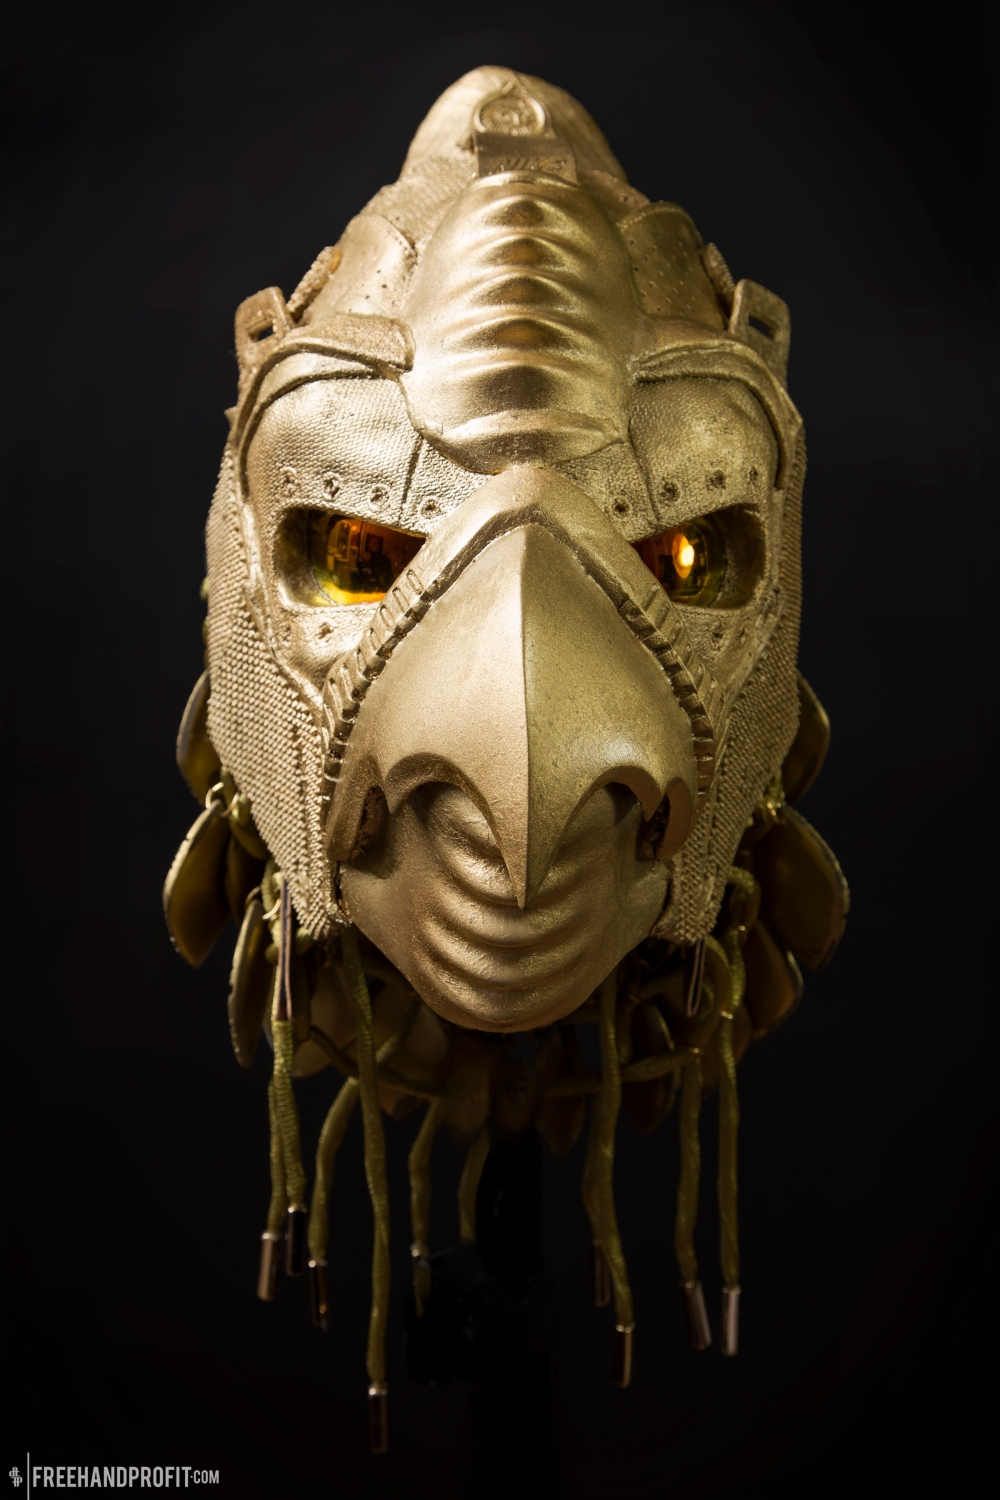 Mask by Freehand Profit